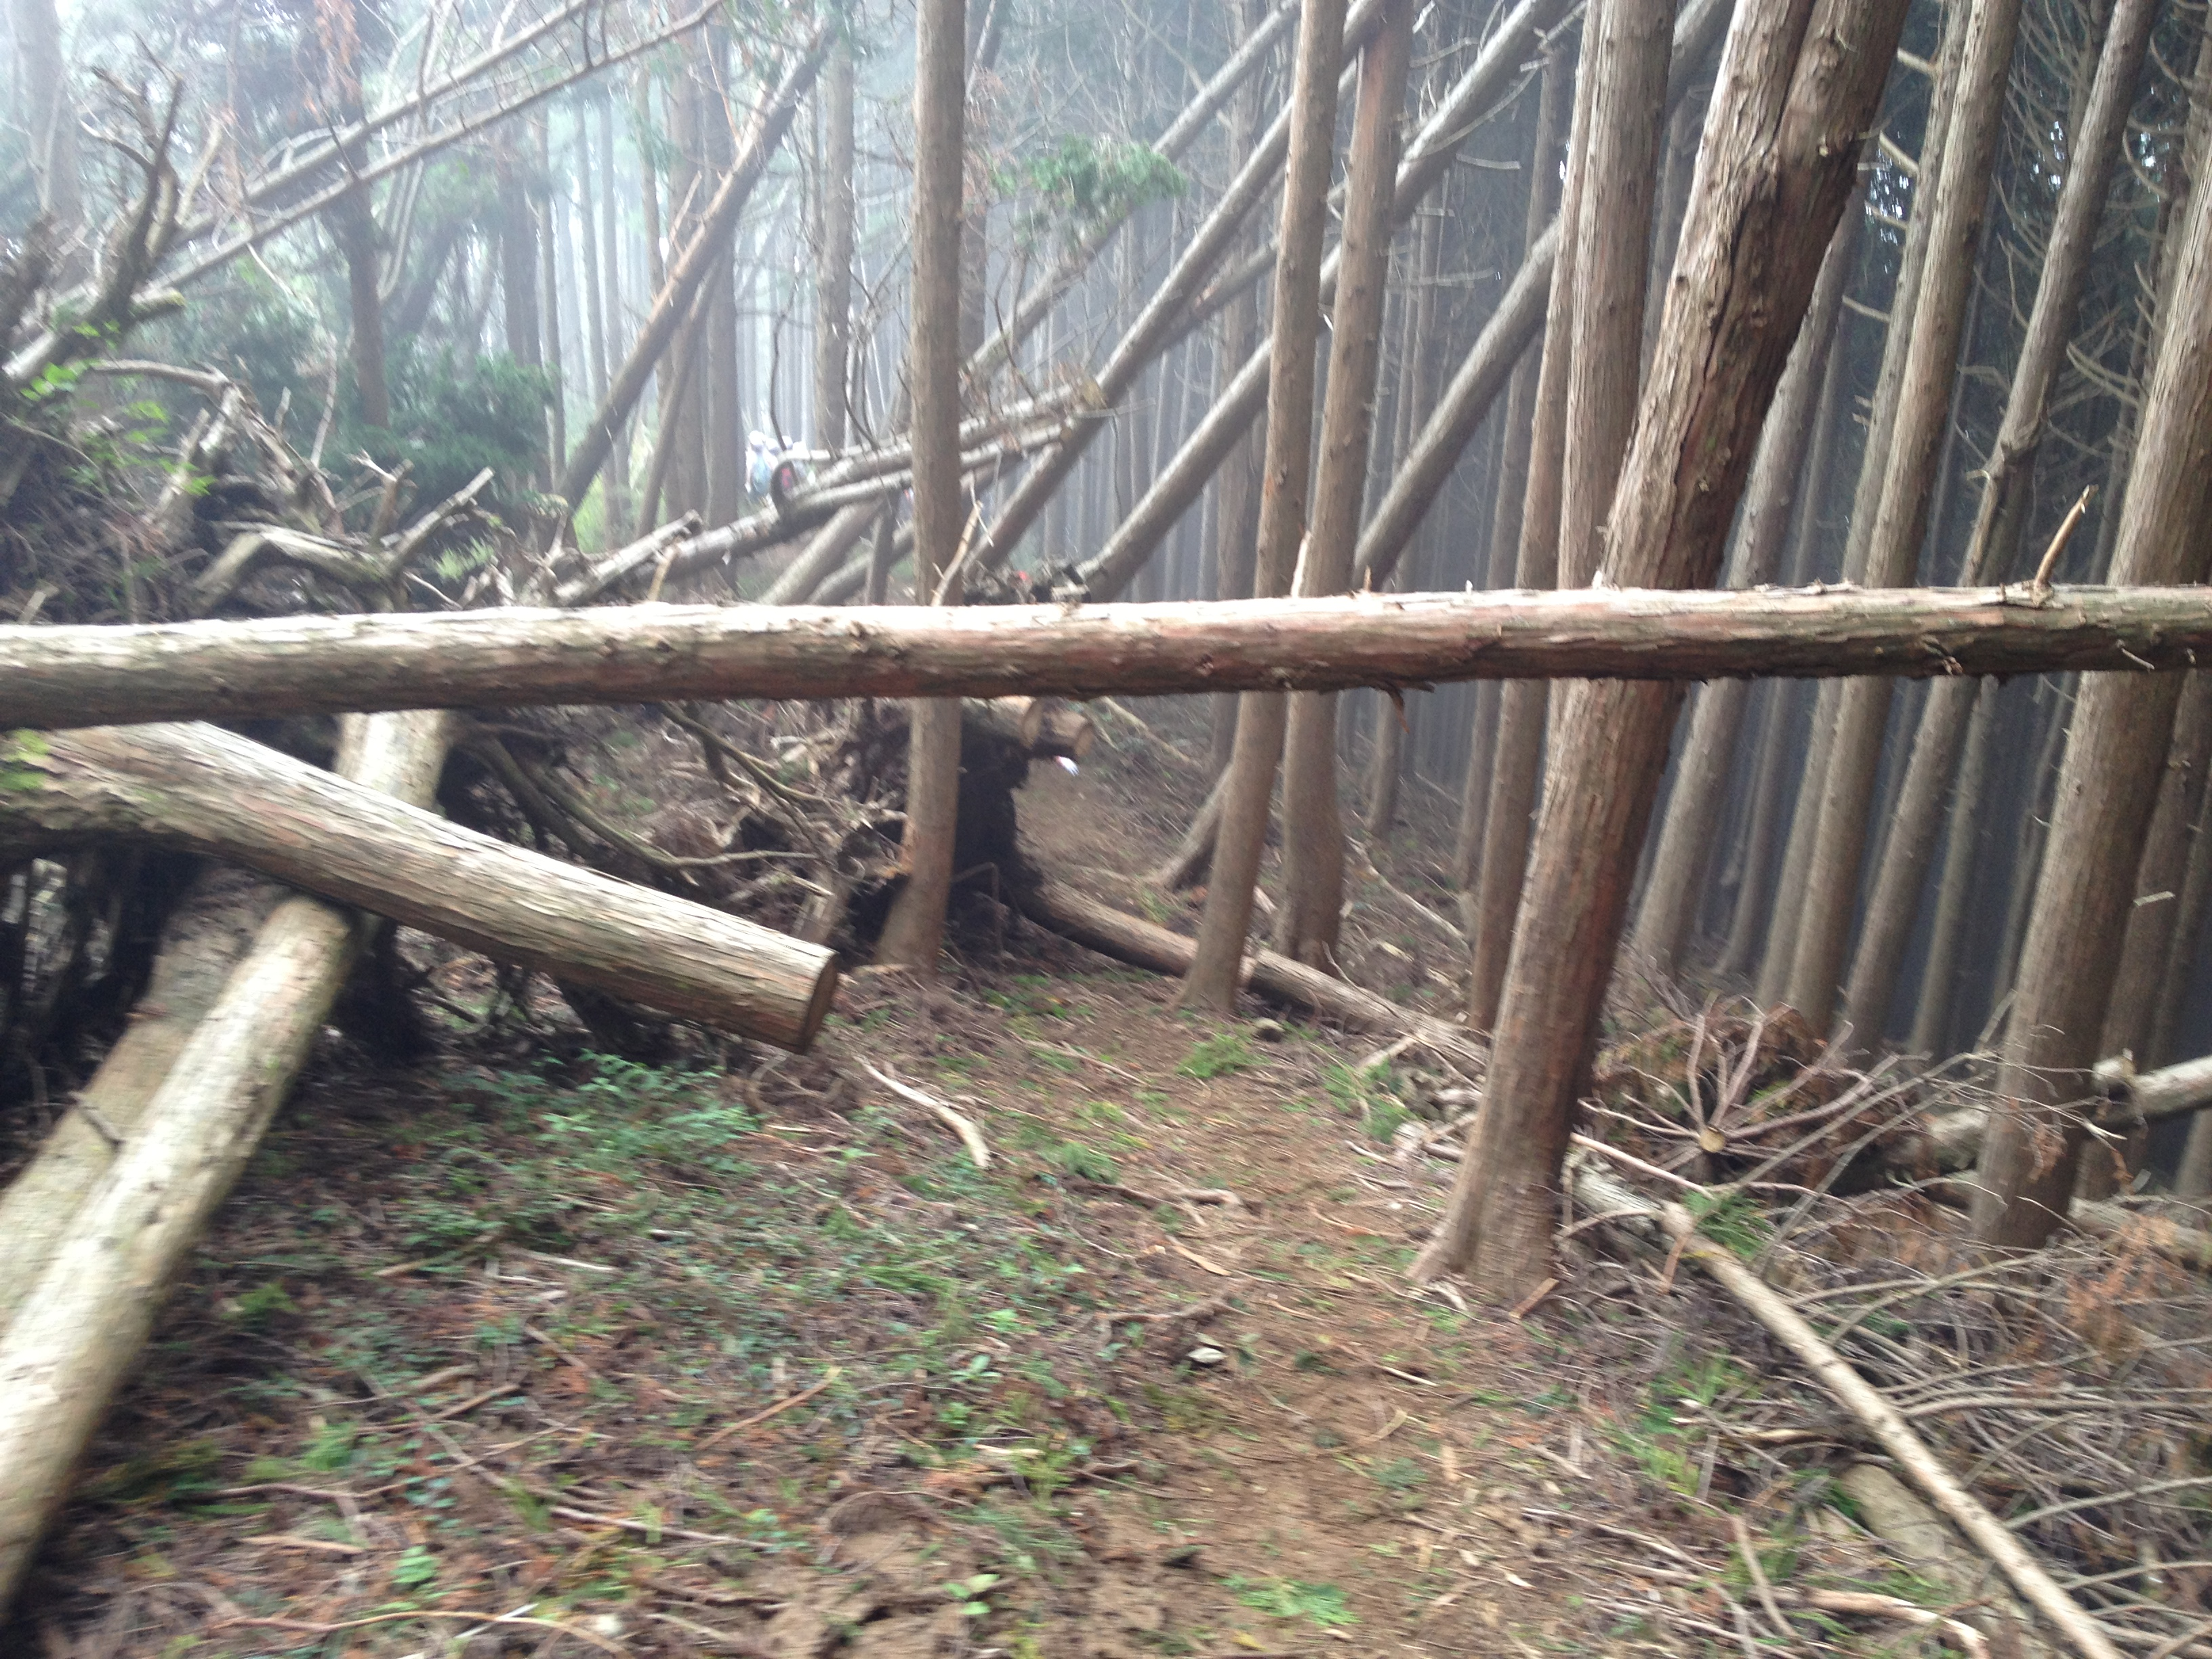 typhoon damaged forest in japan